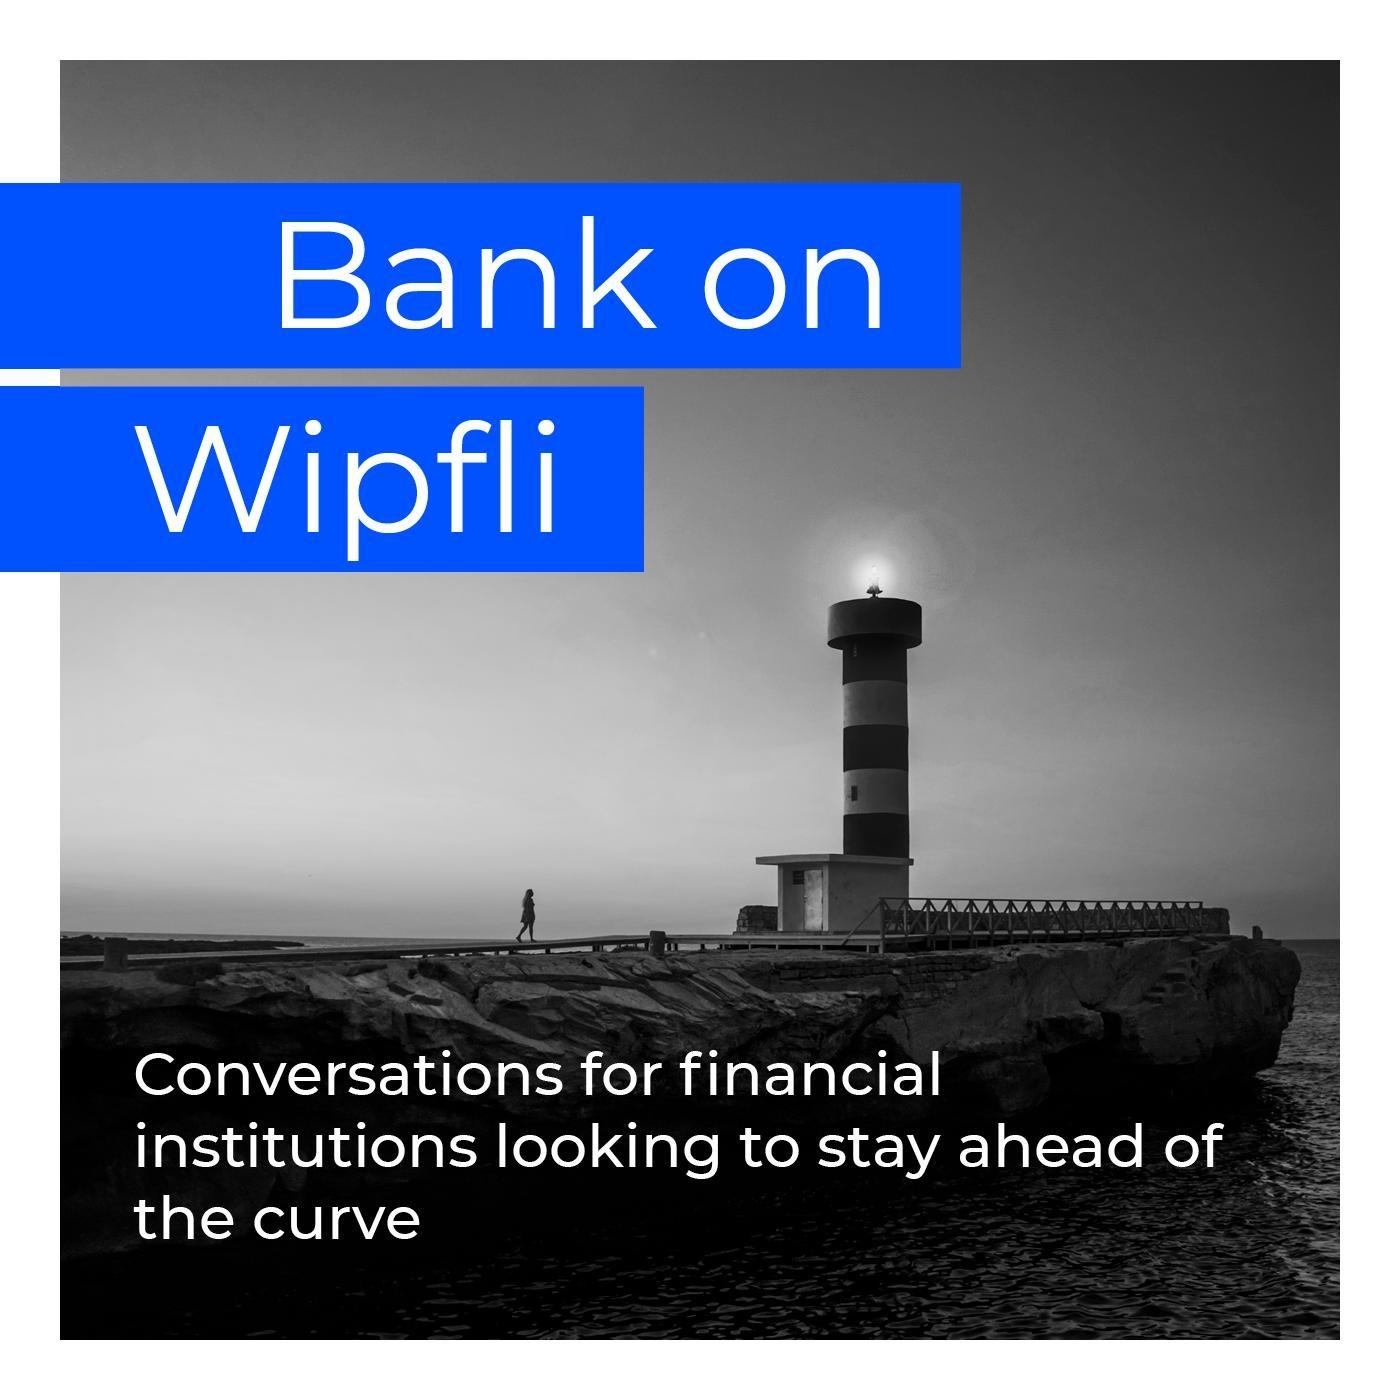 Bank on Wipfli